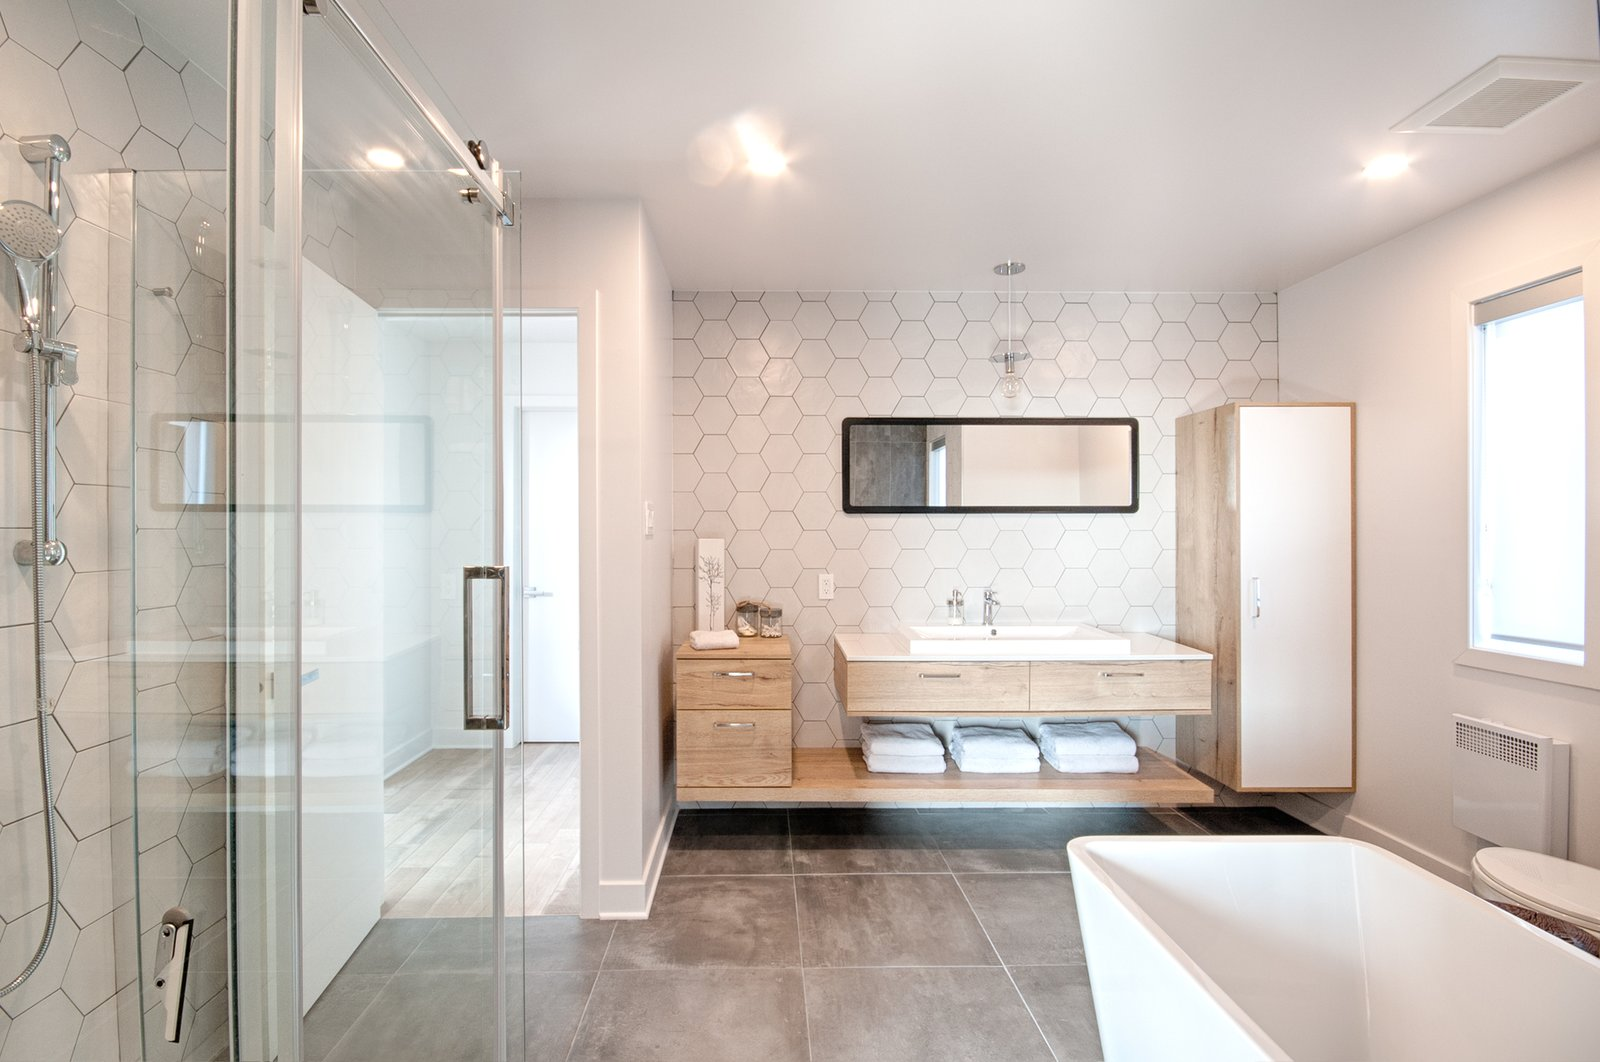 Bath Room, Engineered Quartz Counter, Ceramic Tile Floor, Freestanding Tub, Open Shower, and Ceramic Tile Wall Bathroom with hexagon tiles by ITAL NORD and miroir by IKEA  James house by Concept Dub